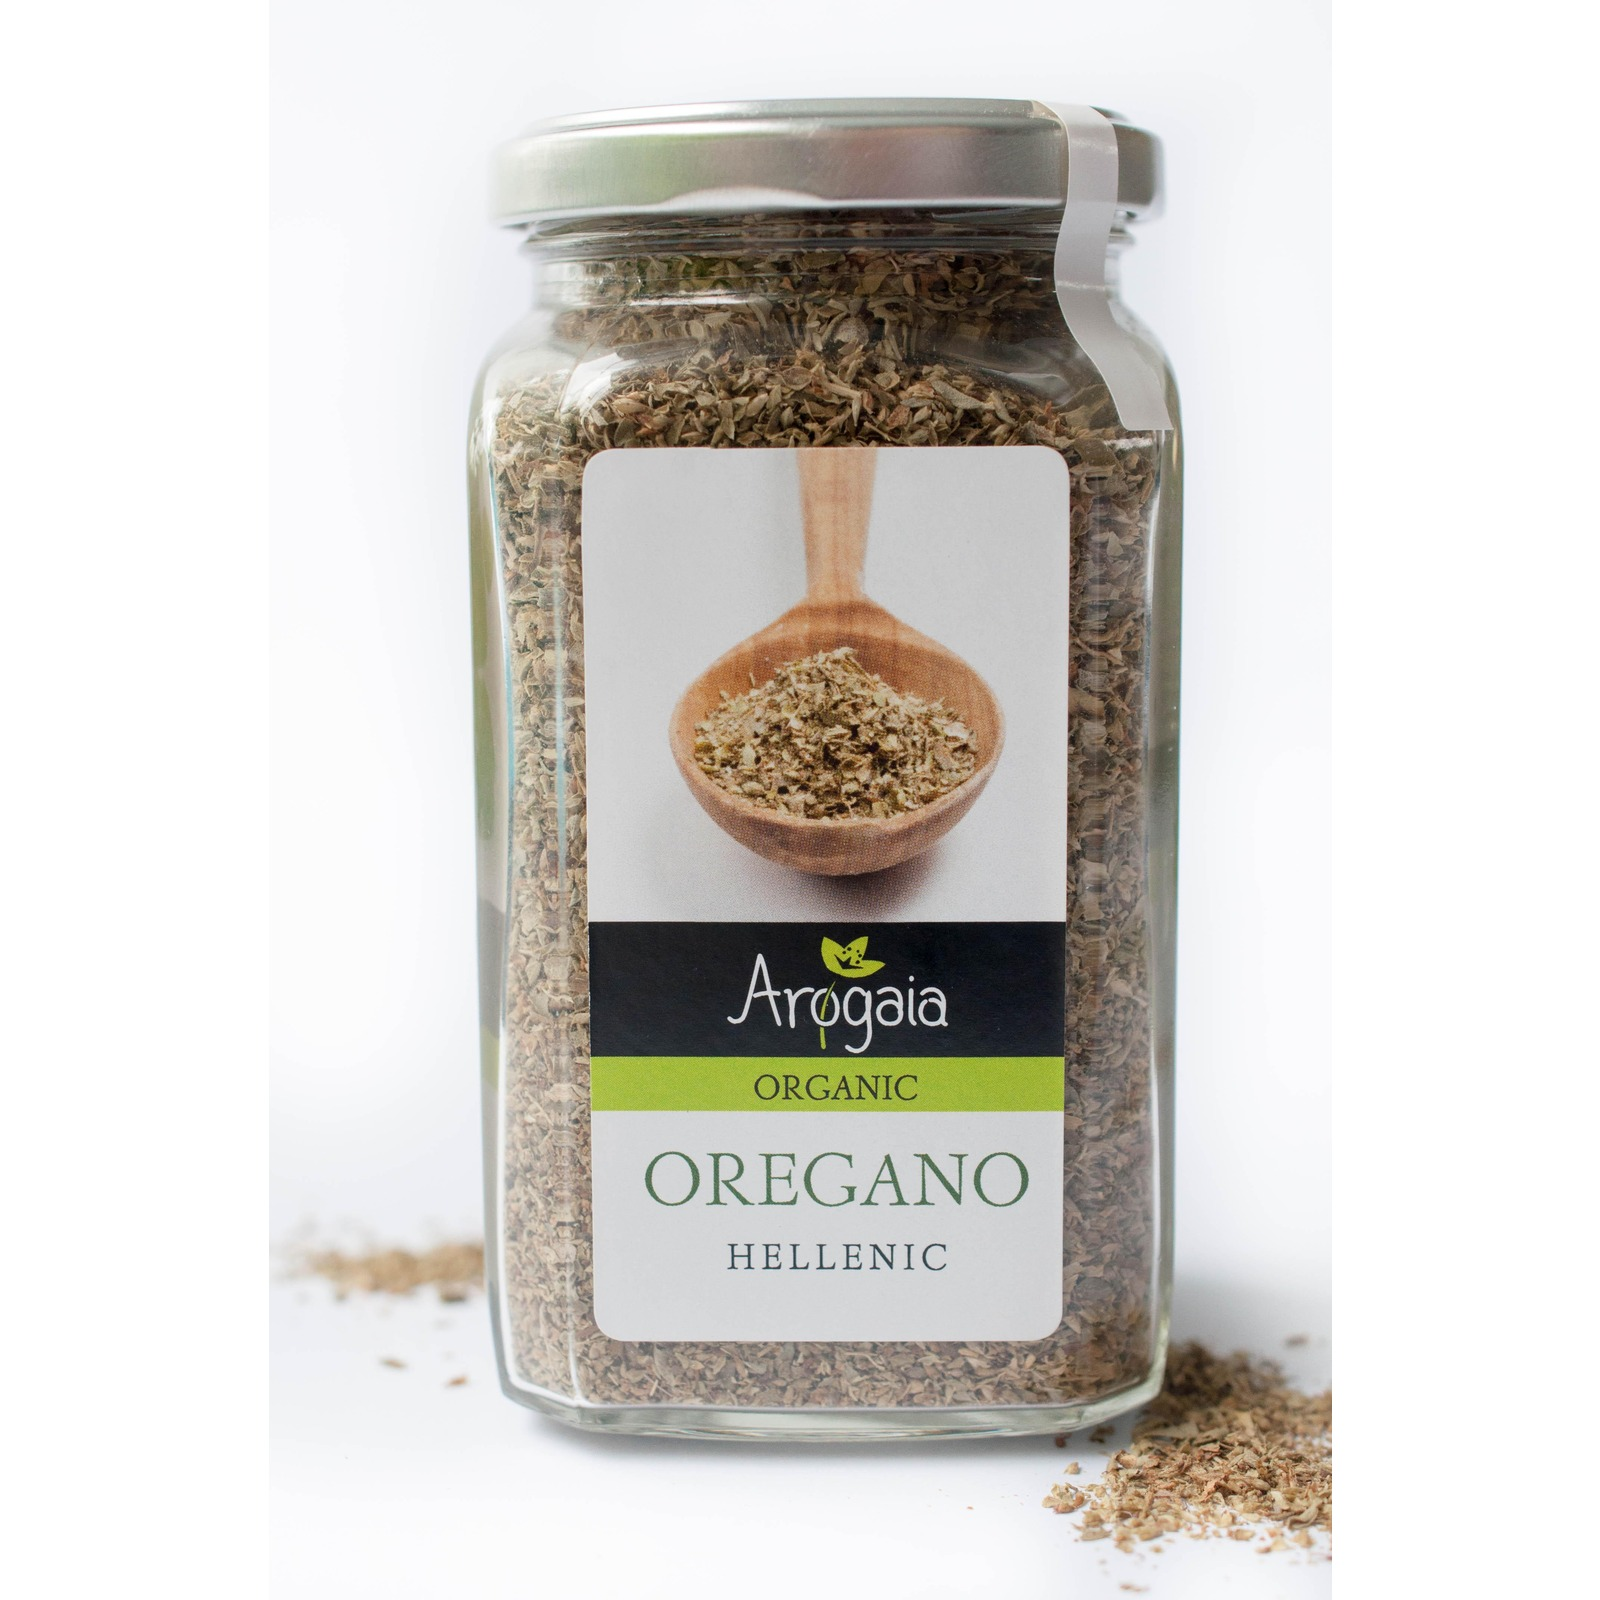 Arogaia Greek Organic Oregano Jar